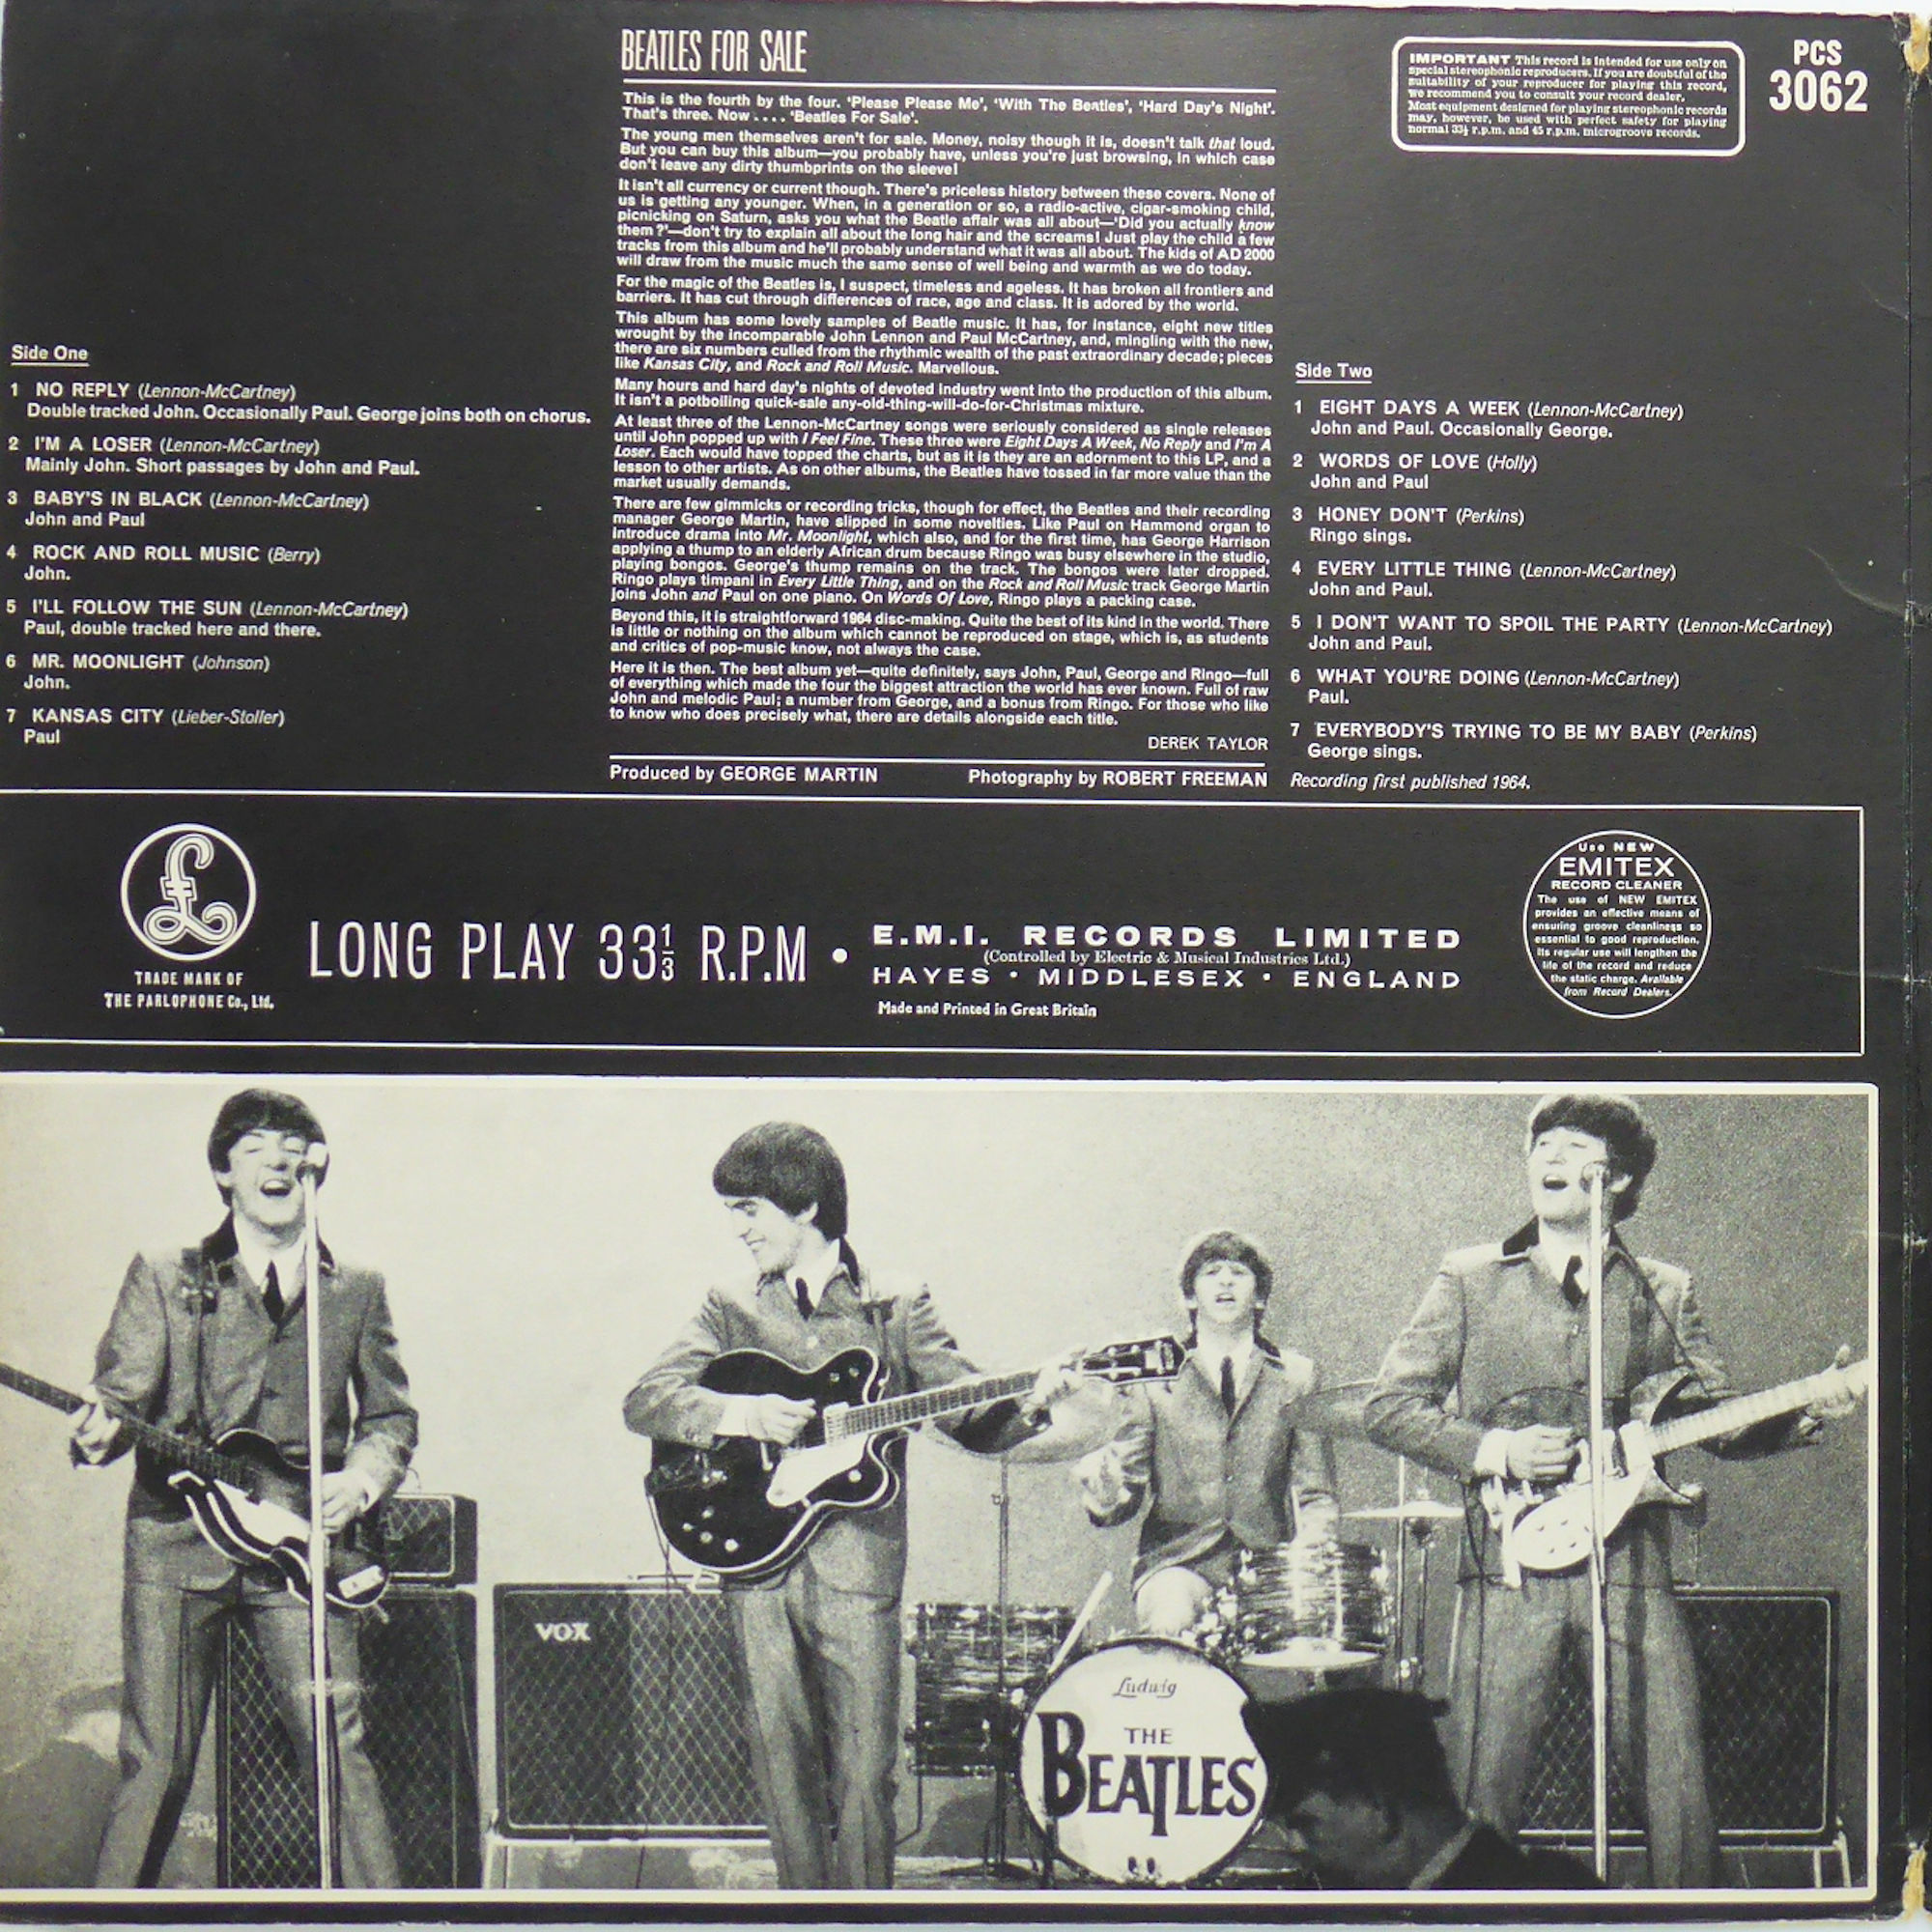 The Beatles Beatles For Sale Pcs 3062 1964 Stereo